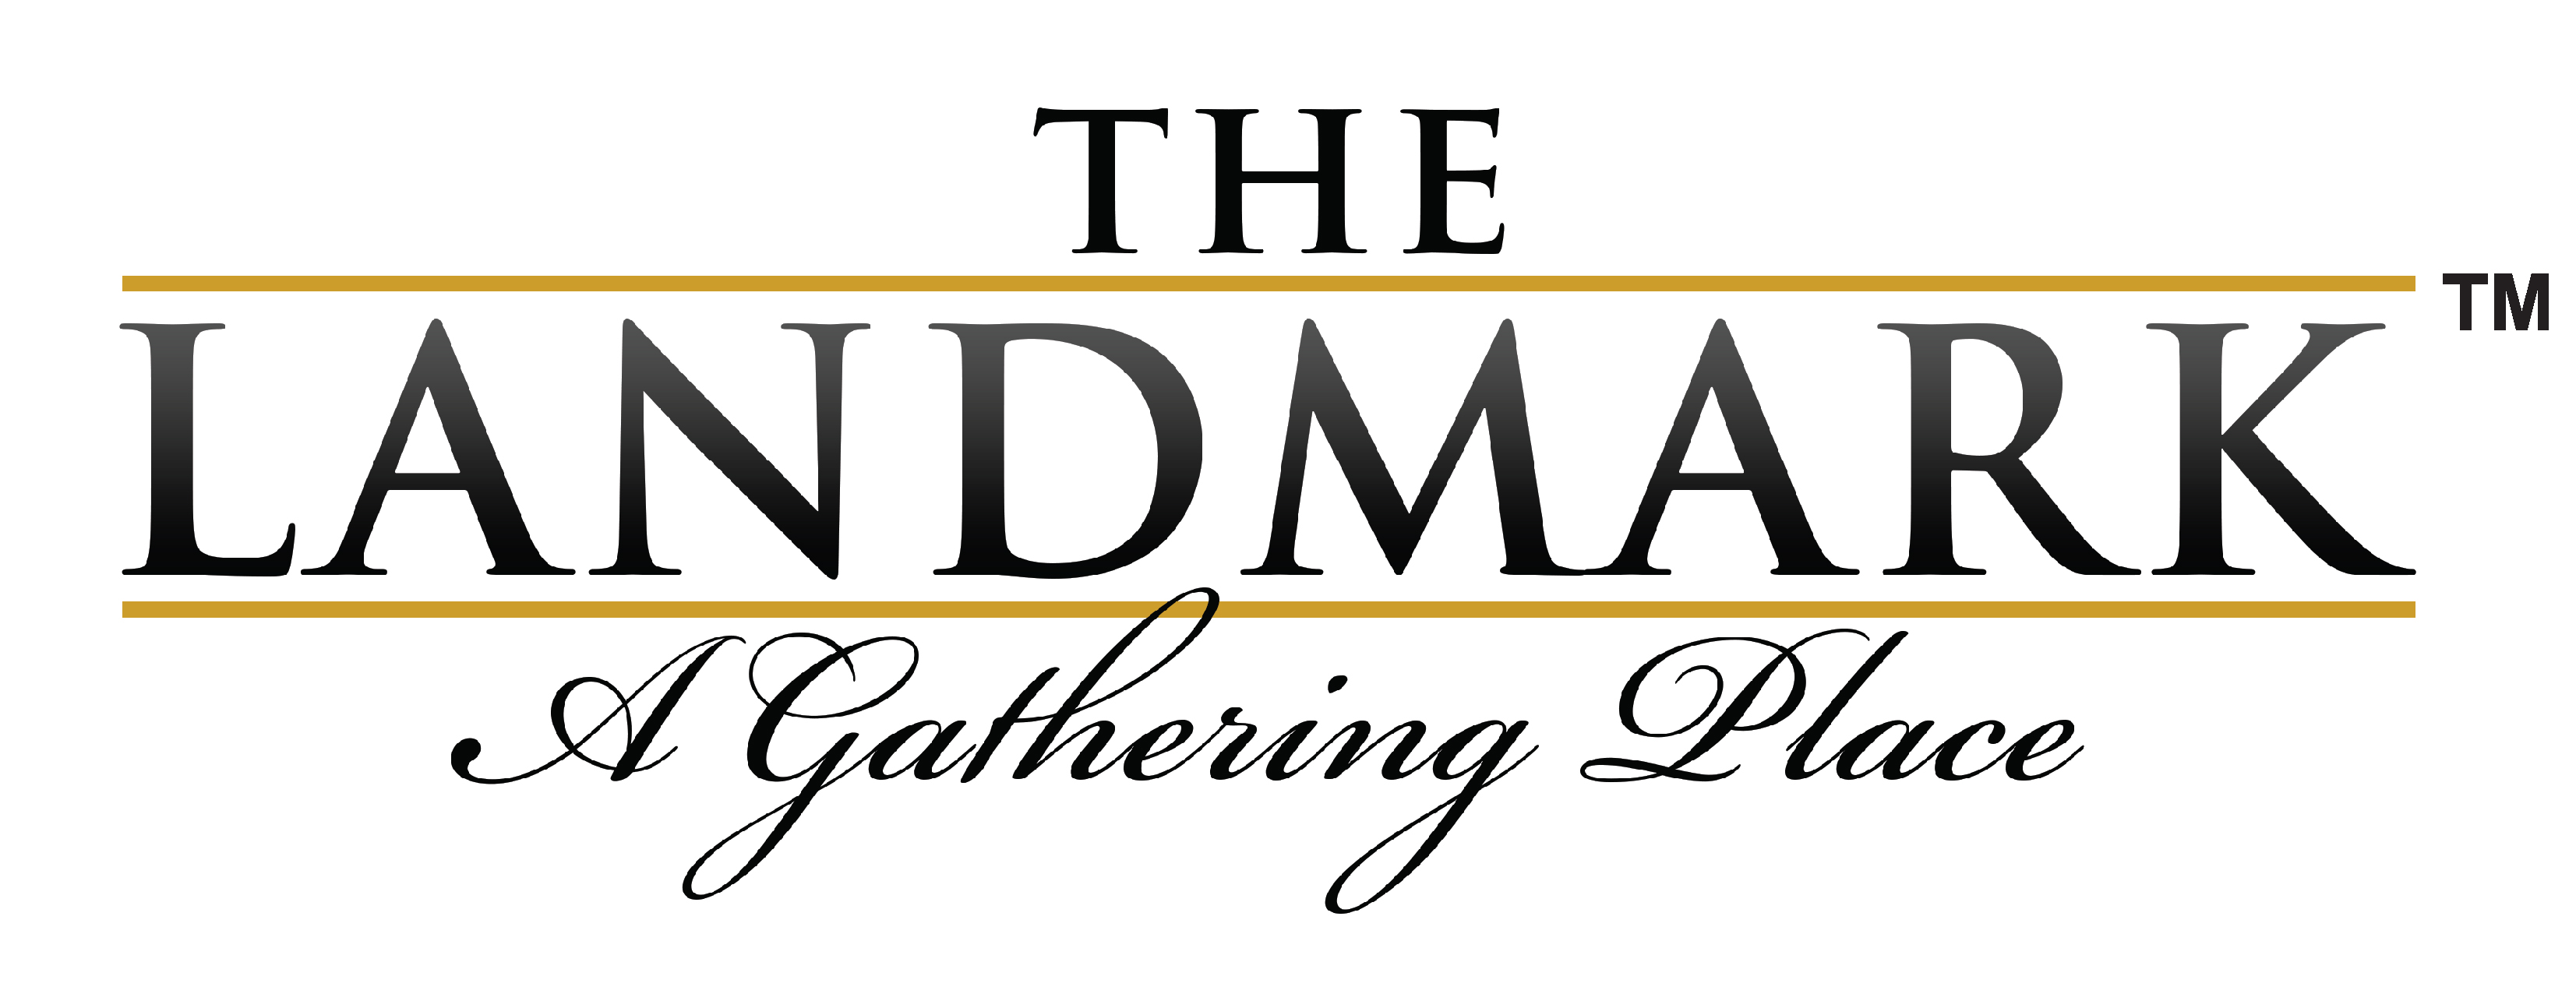 Landmark-Logo-with-TM